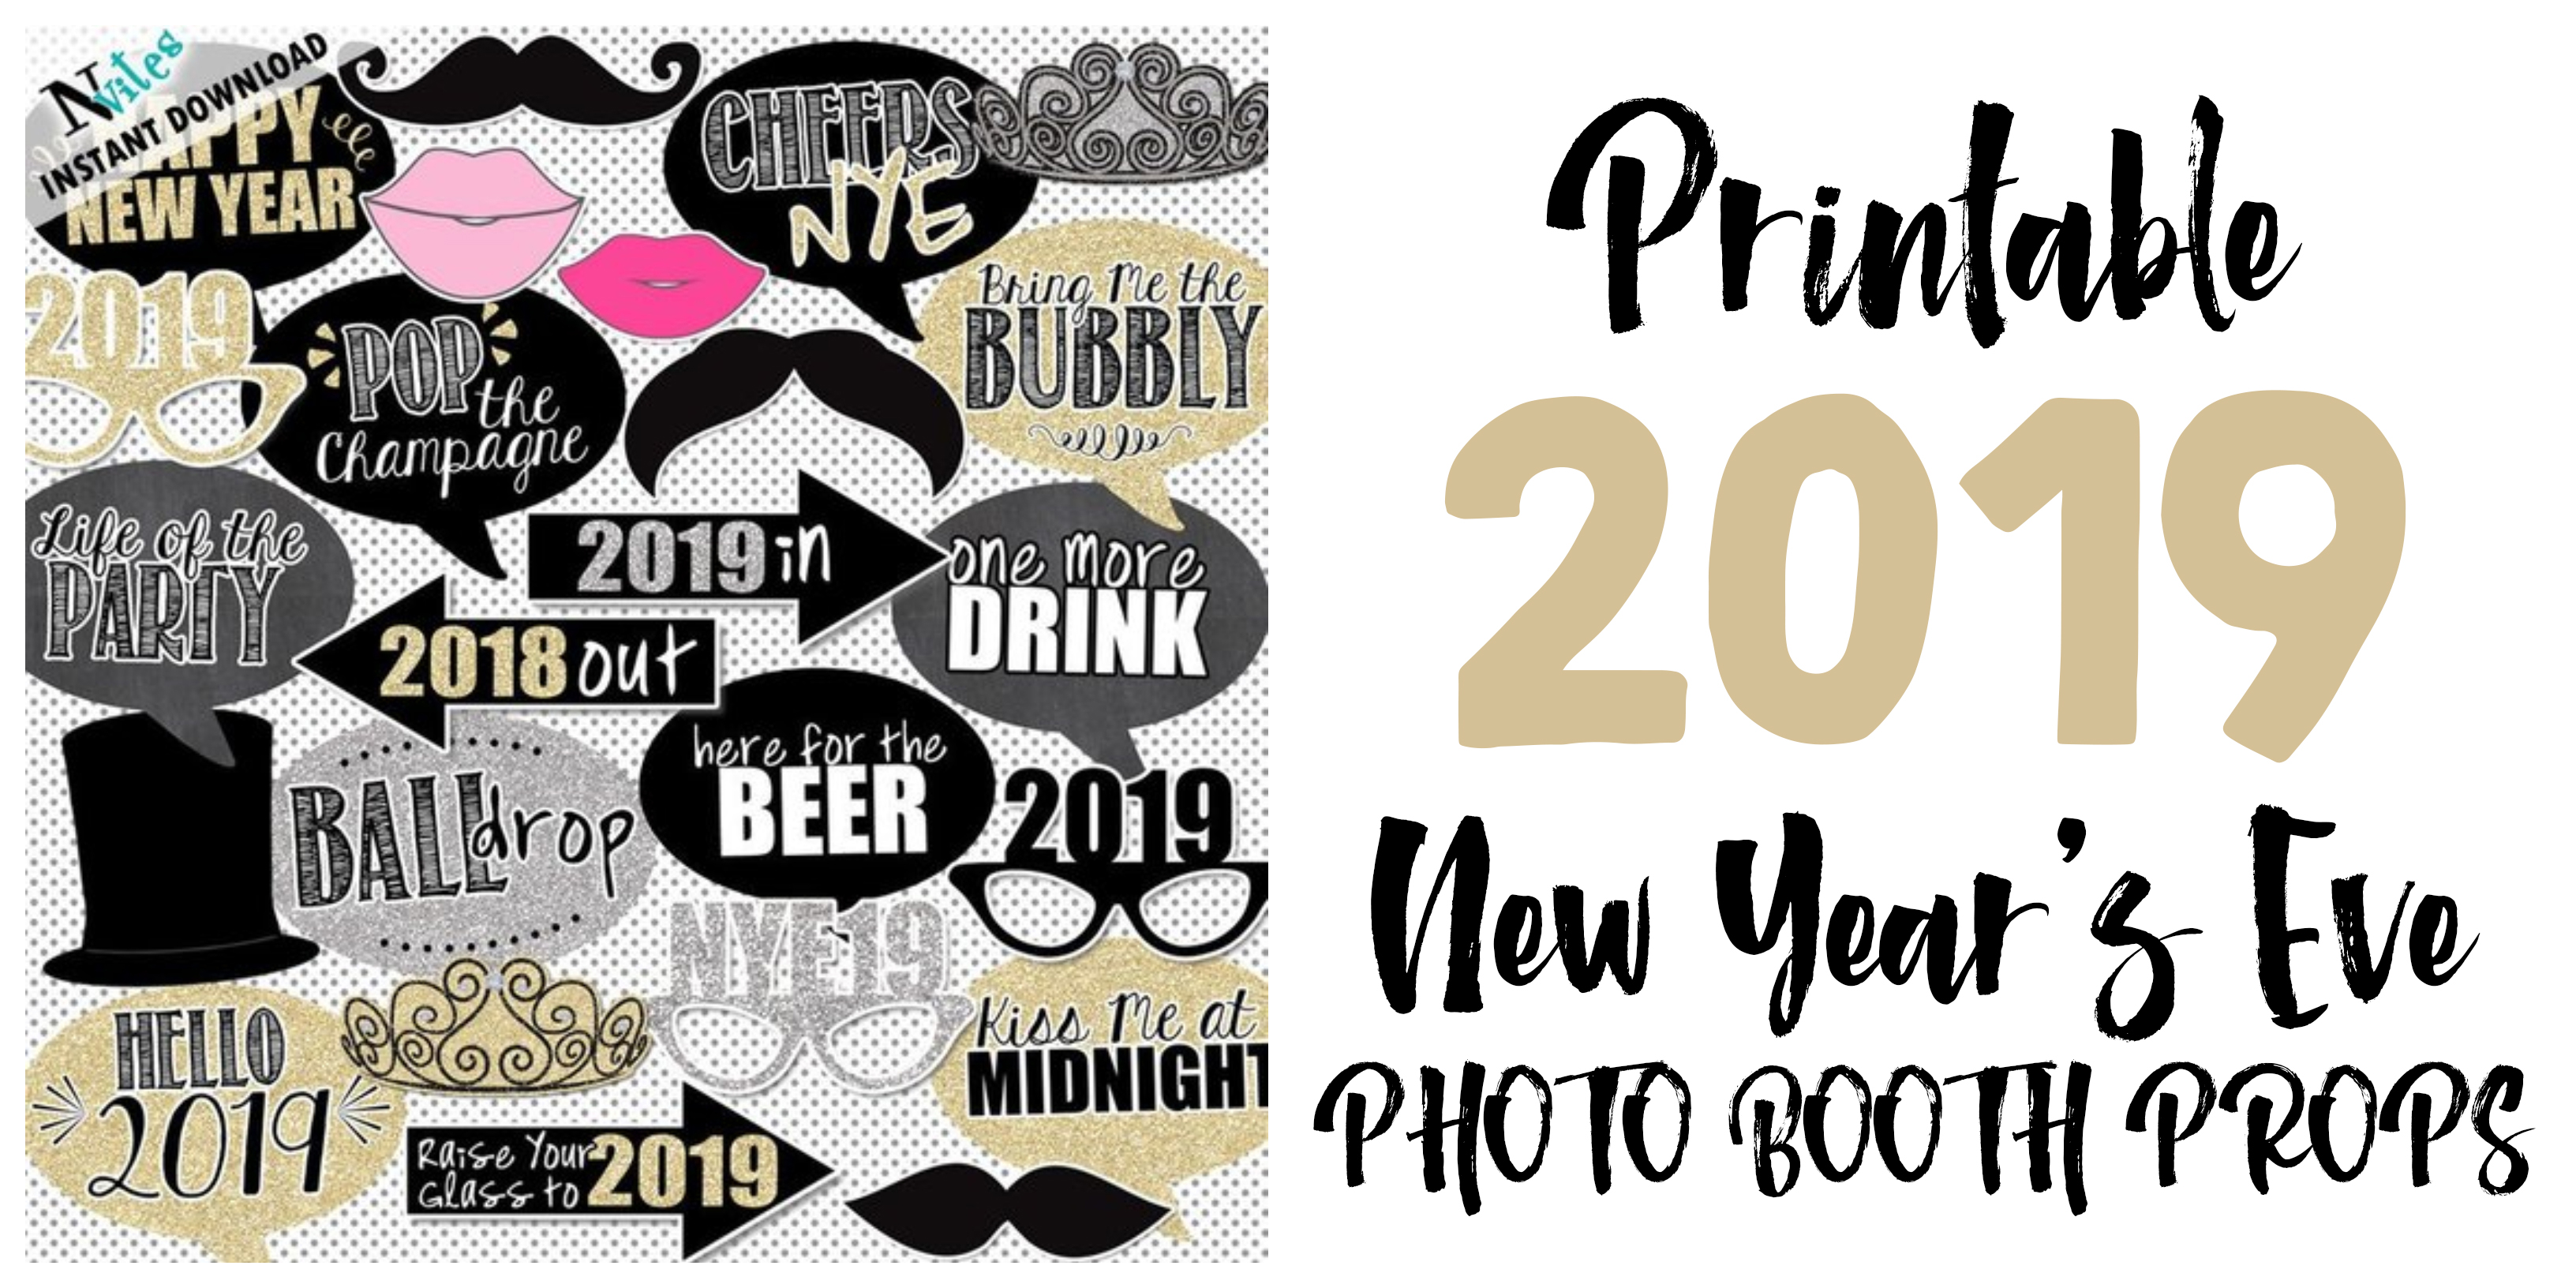 welcome the new year with 2016 new years eve photo booth props